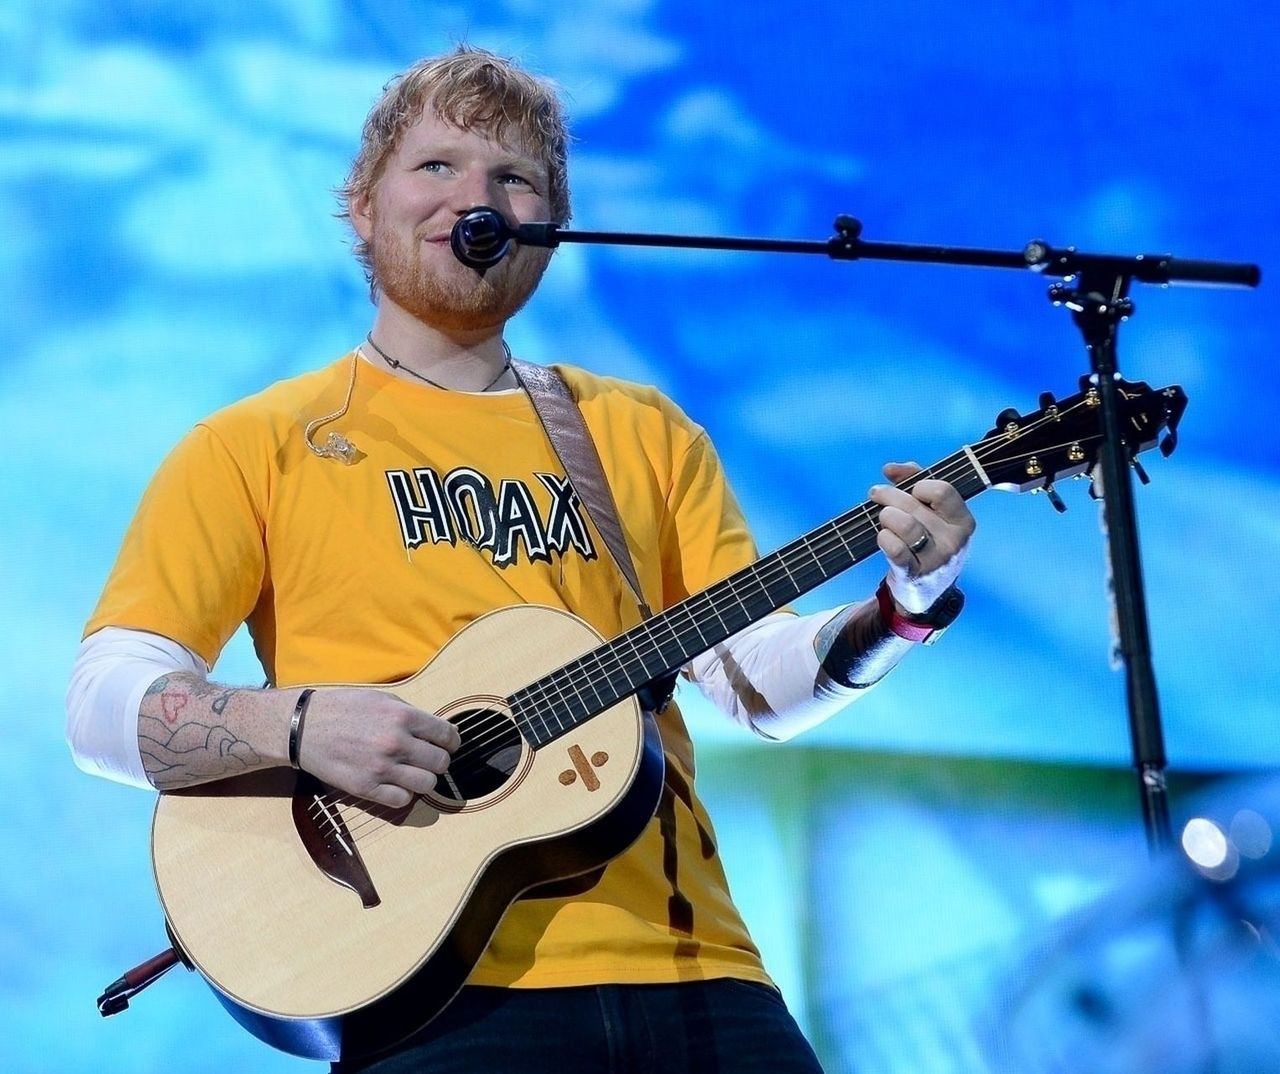 Ed Sheeran performs during his Divide Tour 2019 at Allianz Parque in Sao Paulo Ed Sheeran